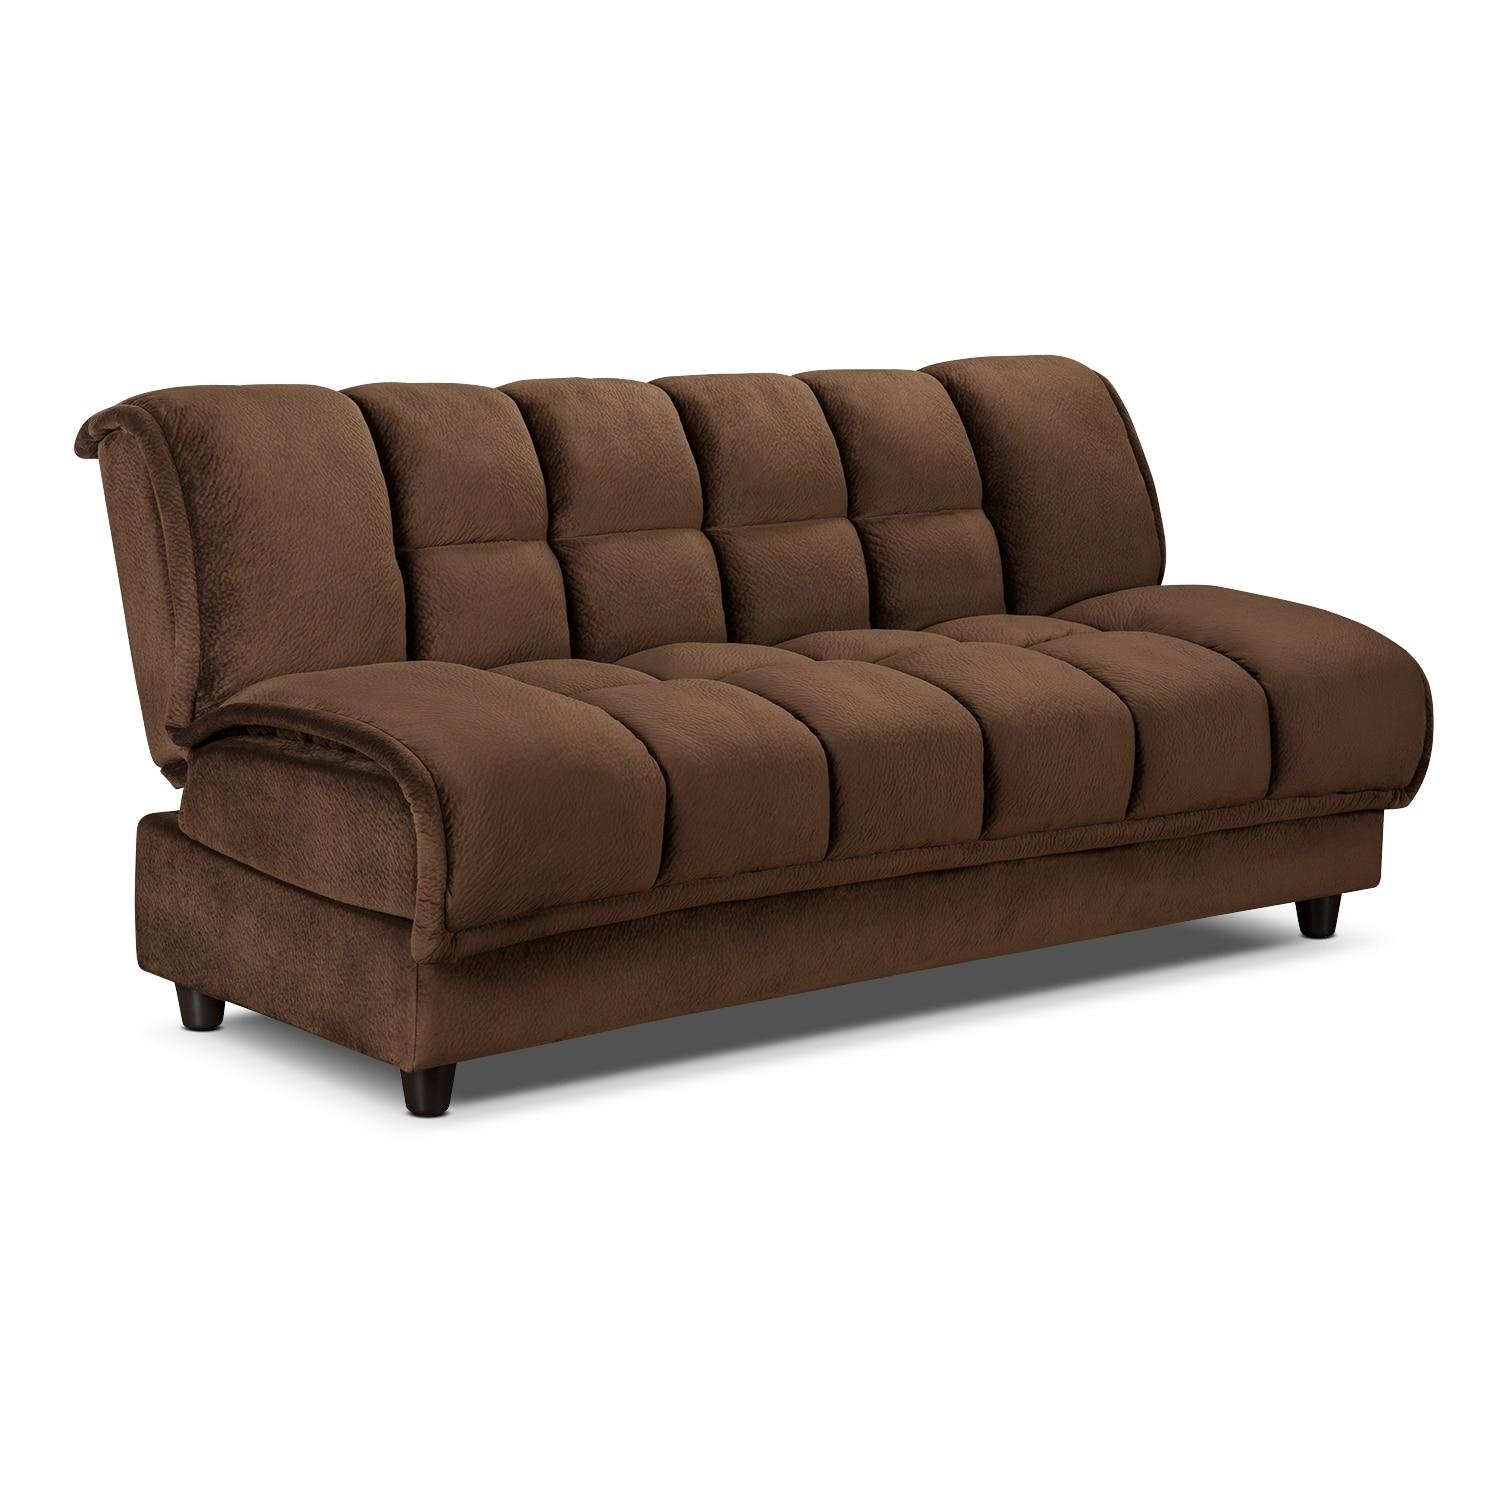 Sleeper Sofas | American Signature | American Signature Furniture Pertaining To American Sofa Beds (Image 19 of 22)